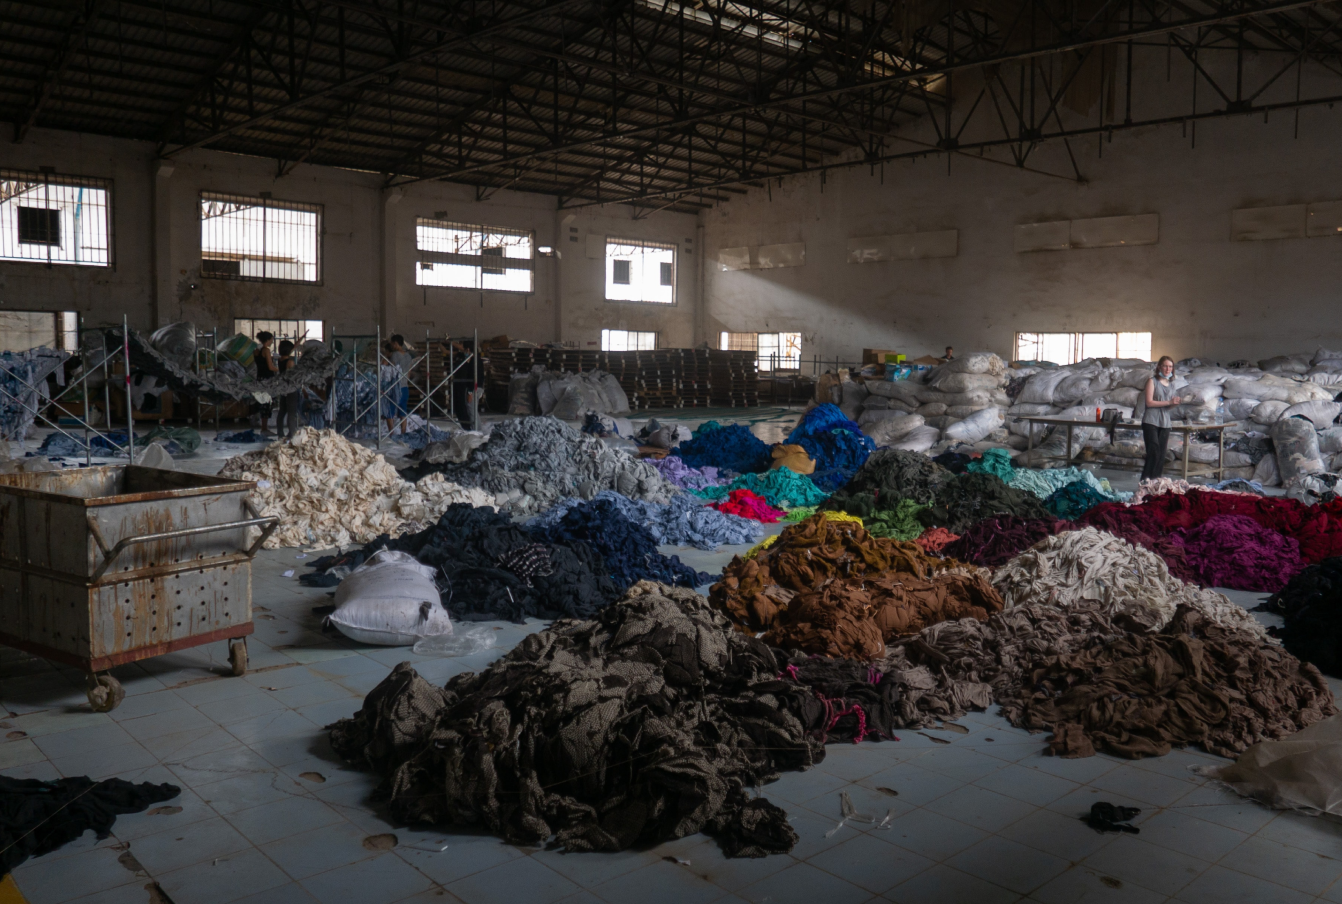 large piles of various coloured fabric